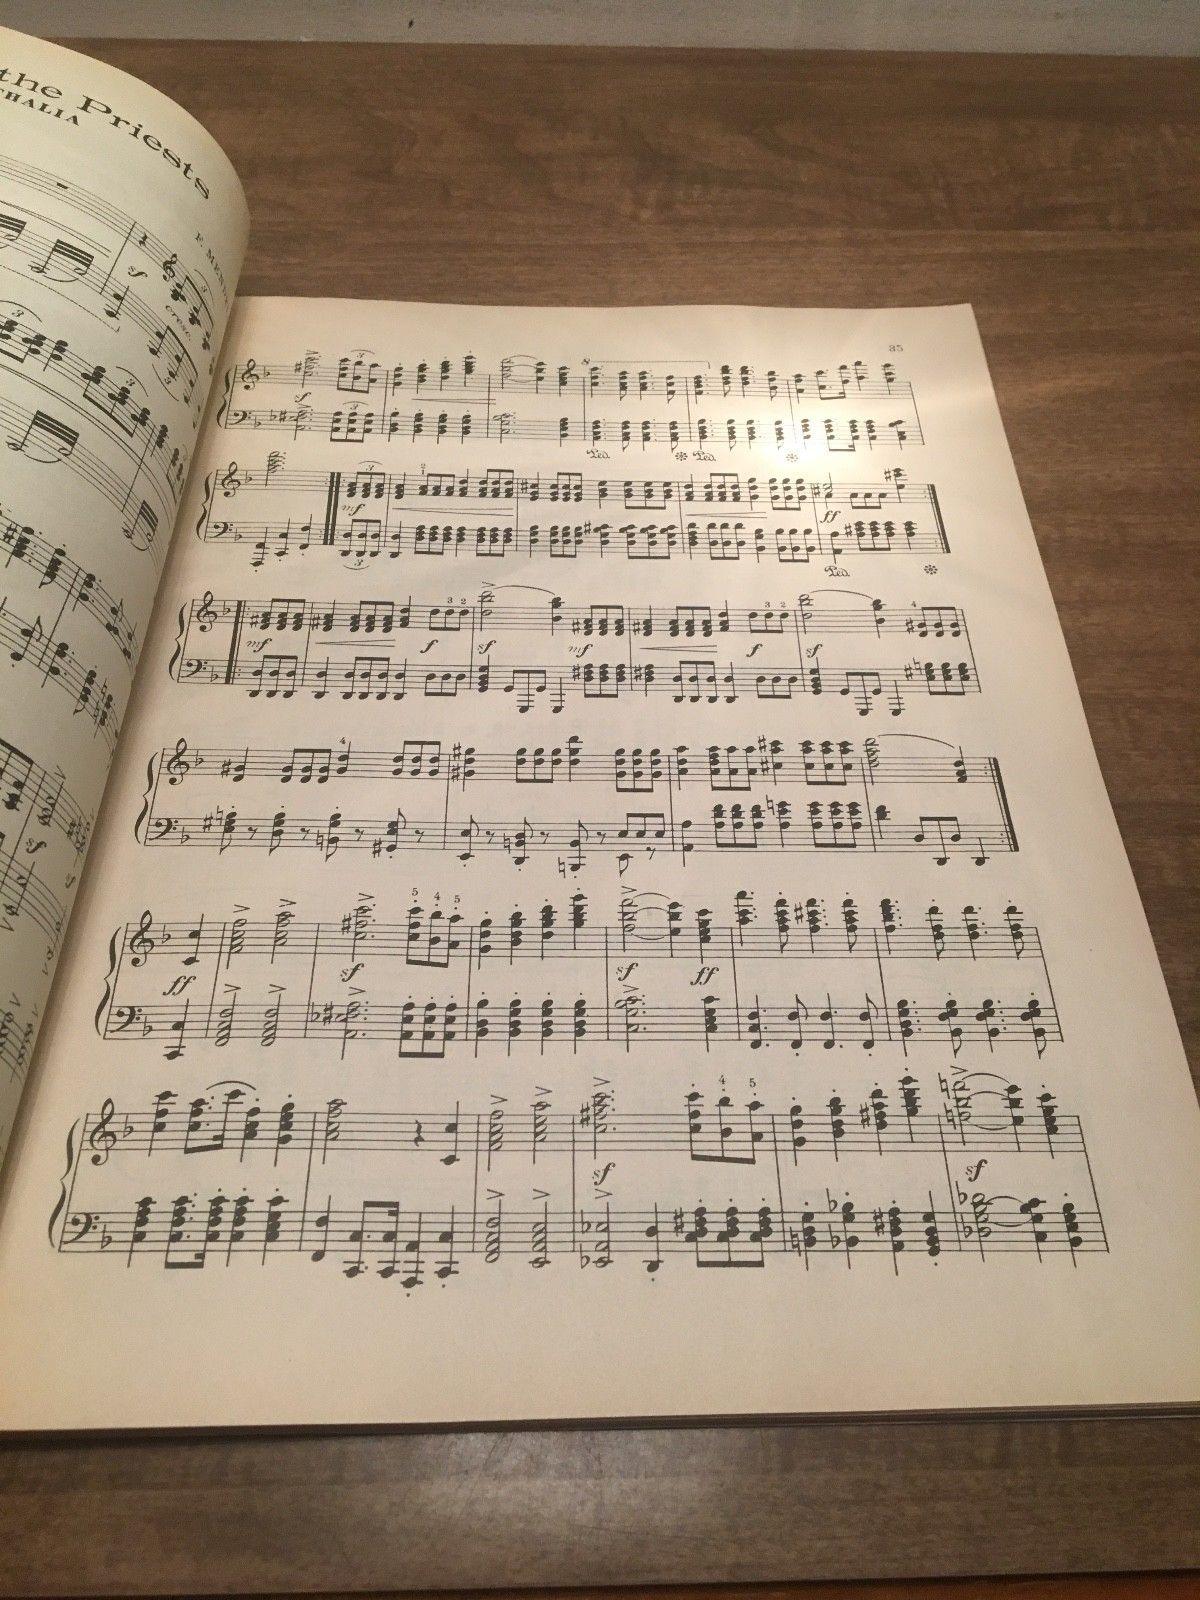 Album of Marches: 30 Worlds Best Marches 1940 World's Best Music Series Book #11